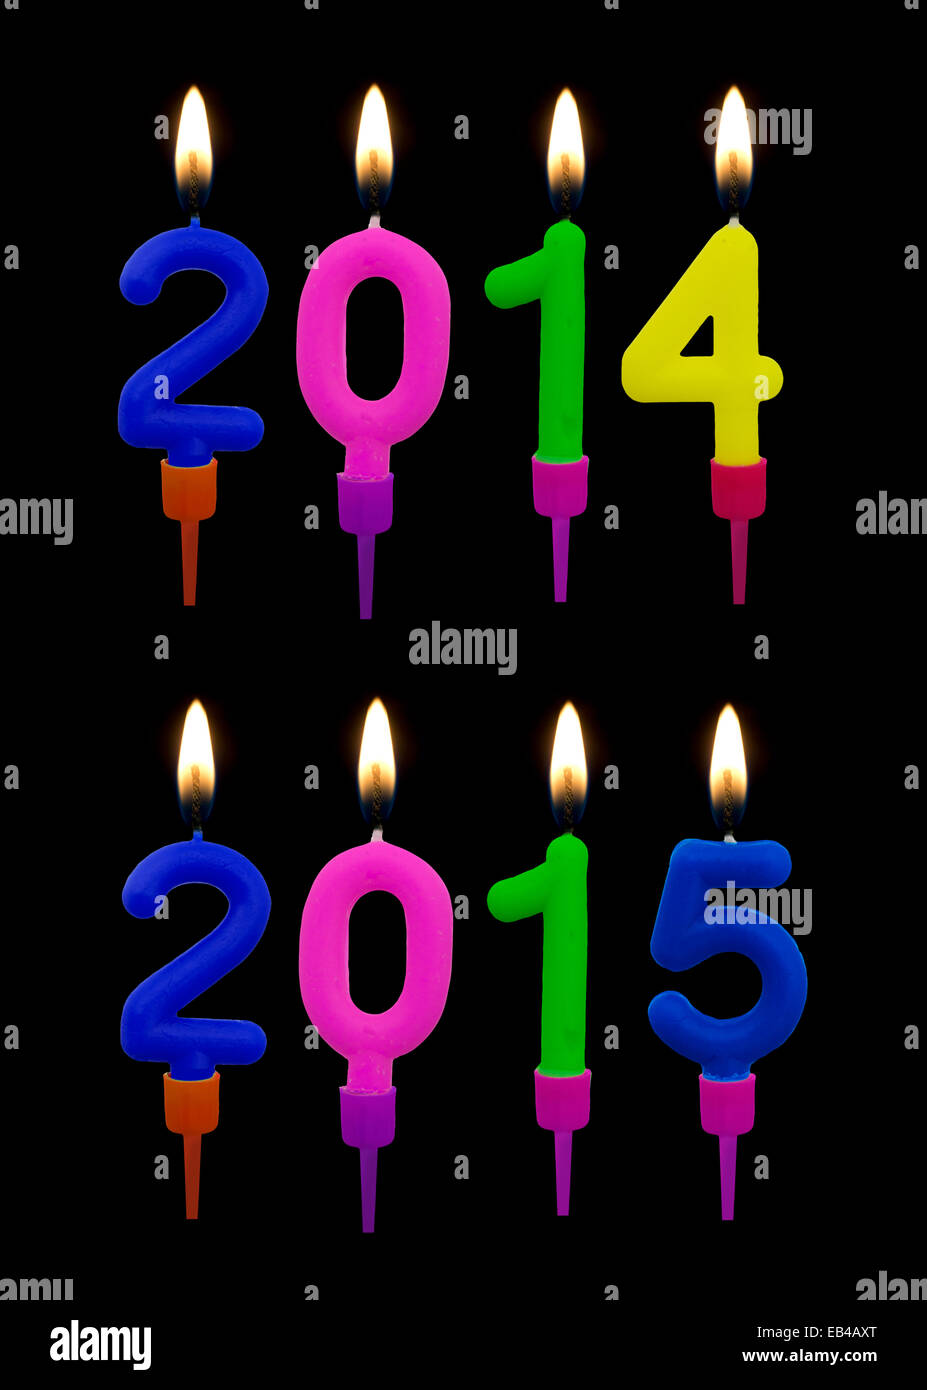 Birthday cake candles 2014 2015 - New Year or Jesus birthday - Stock Image